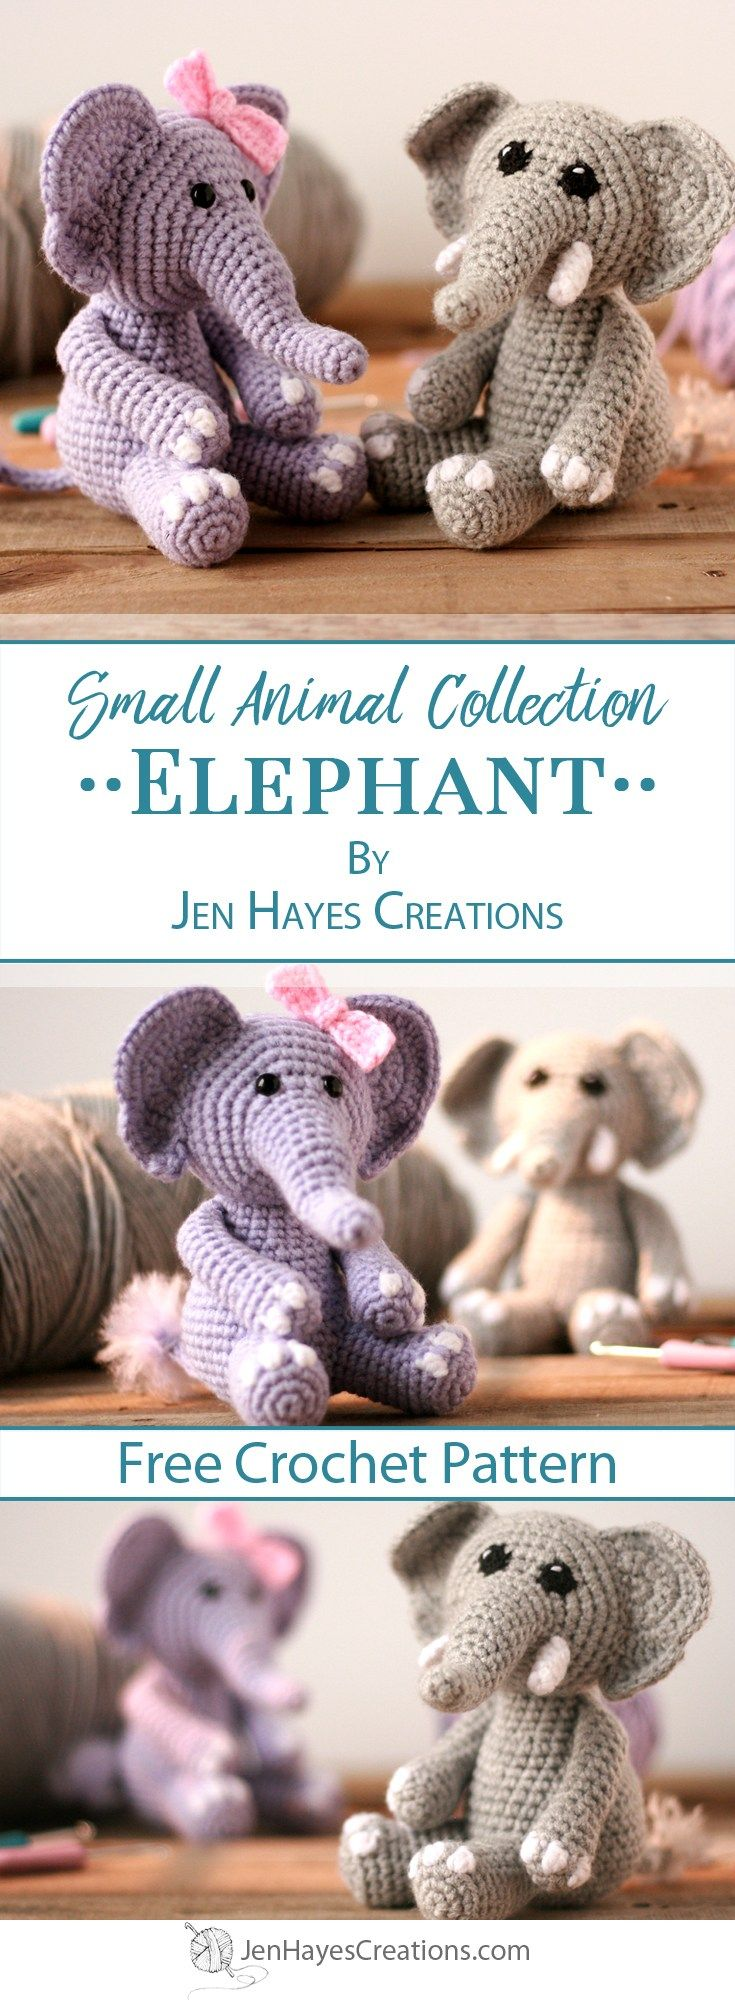 Small Animal Collection: Elephant | Jen Hayes Creations